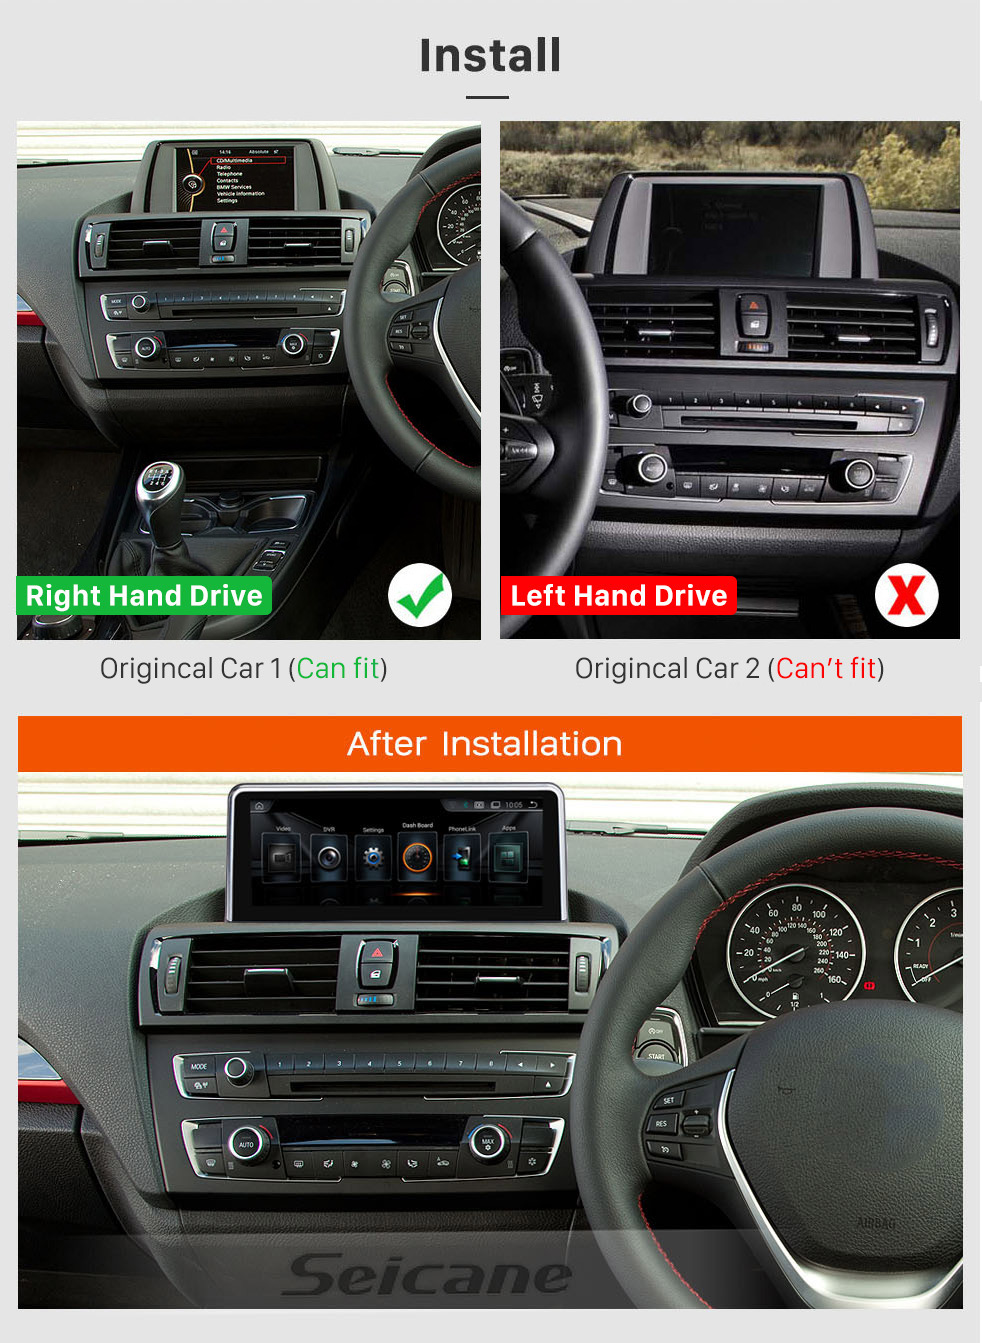 Seicane 10.25 Inch HD Touchscreen Android 8.1 2011-2016 BMW 1 Series F20/F21 Right Hand Drive Car Stereo Radio Head Unit GPS Navigation System Bluetooth Phone Support WIFI DVR 1080P Video Steering Wheel Control